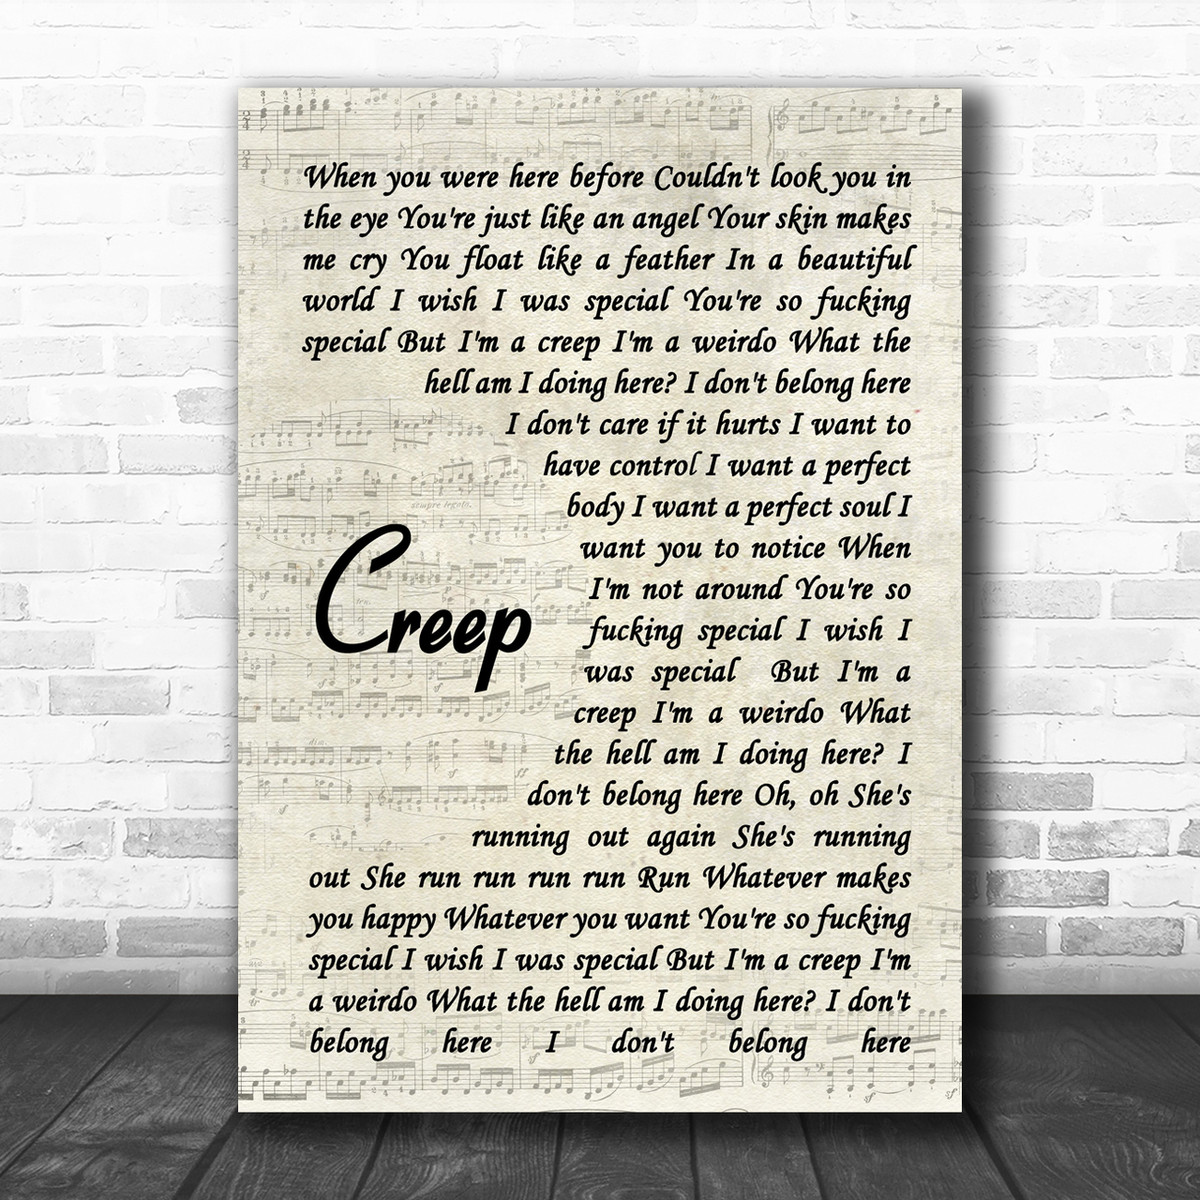 radiohead - creep lyrics